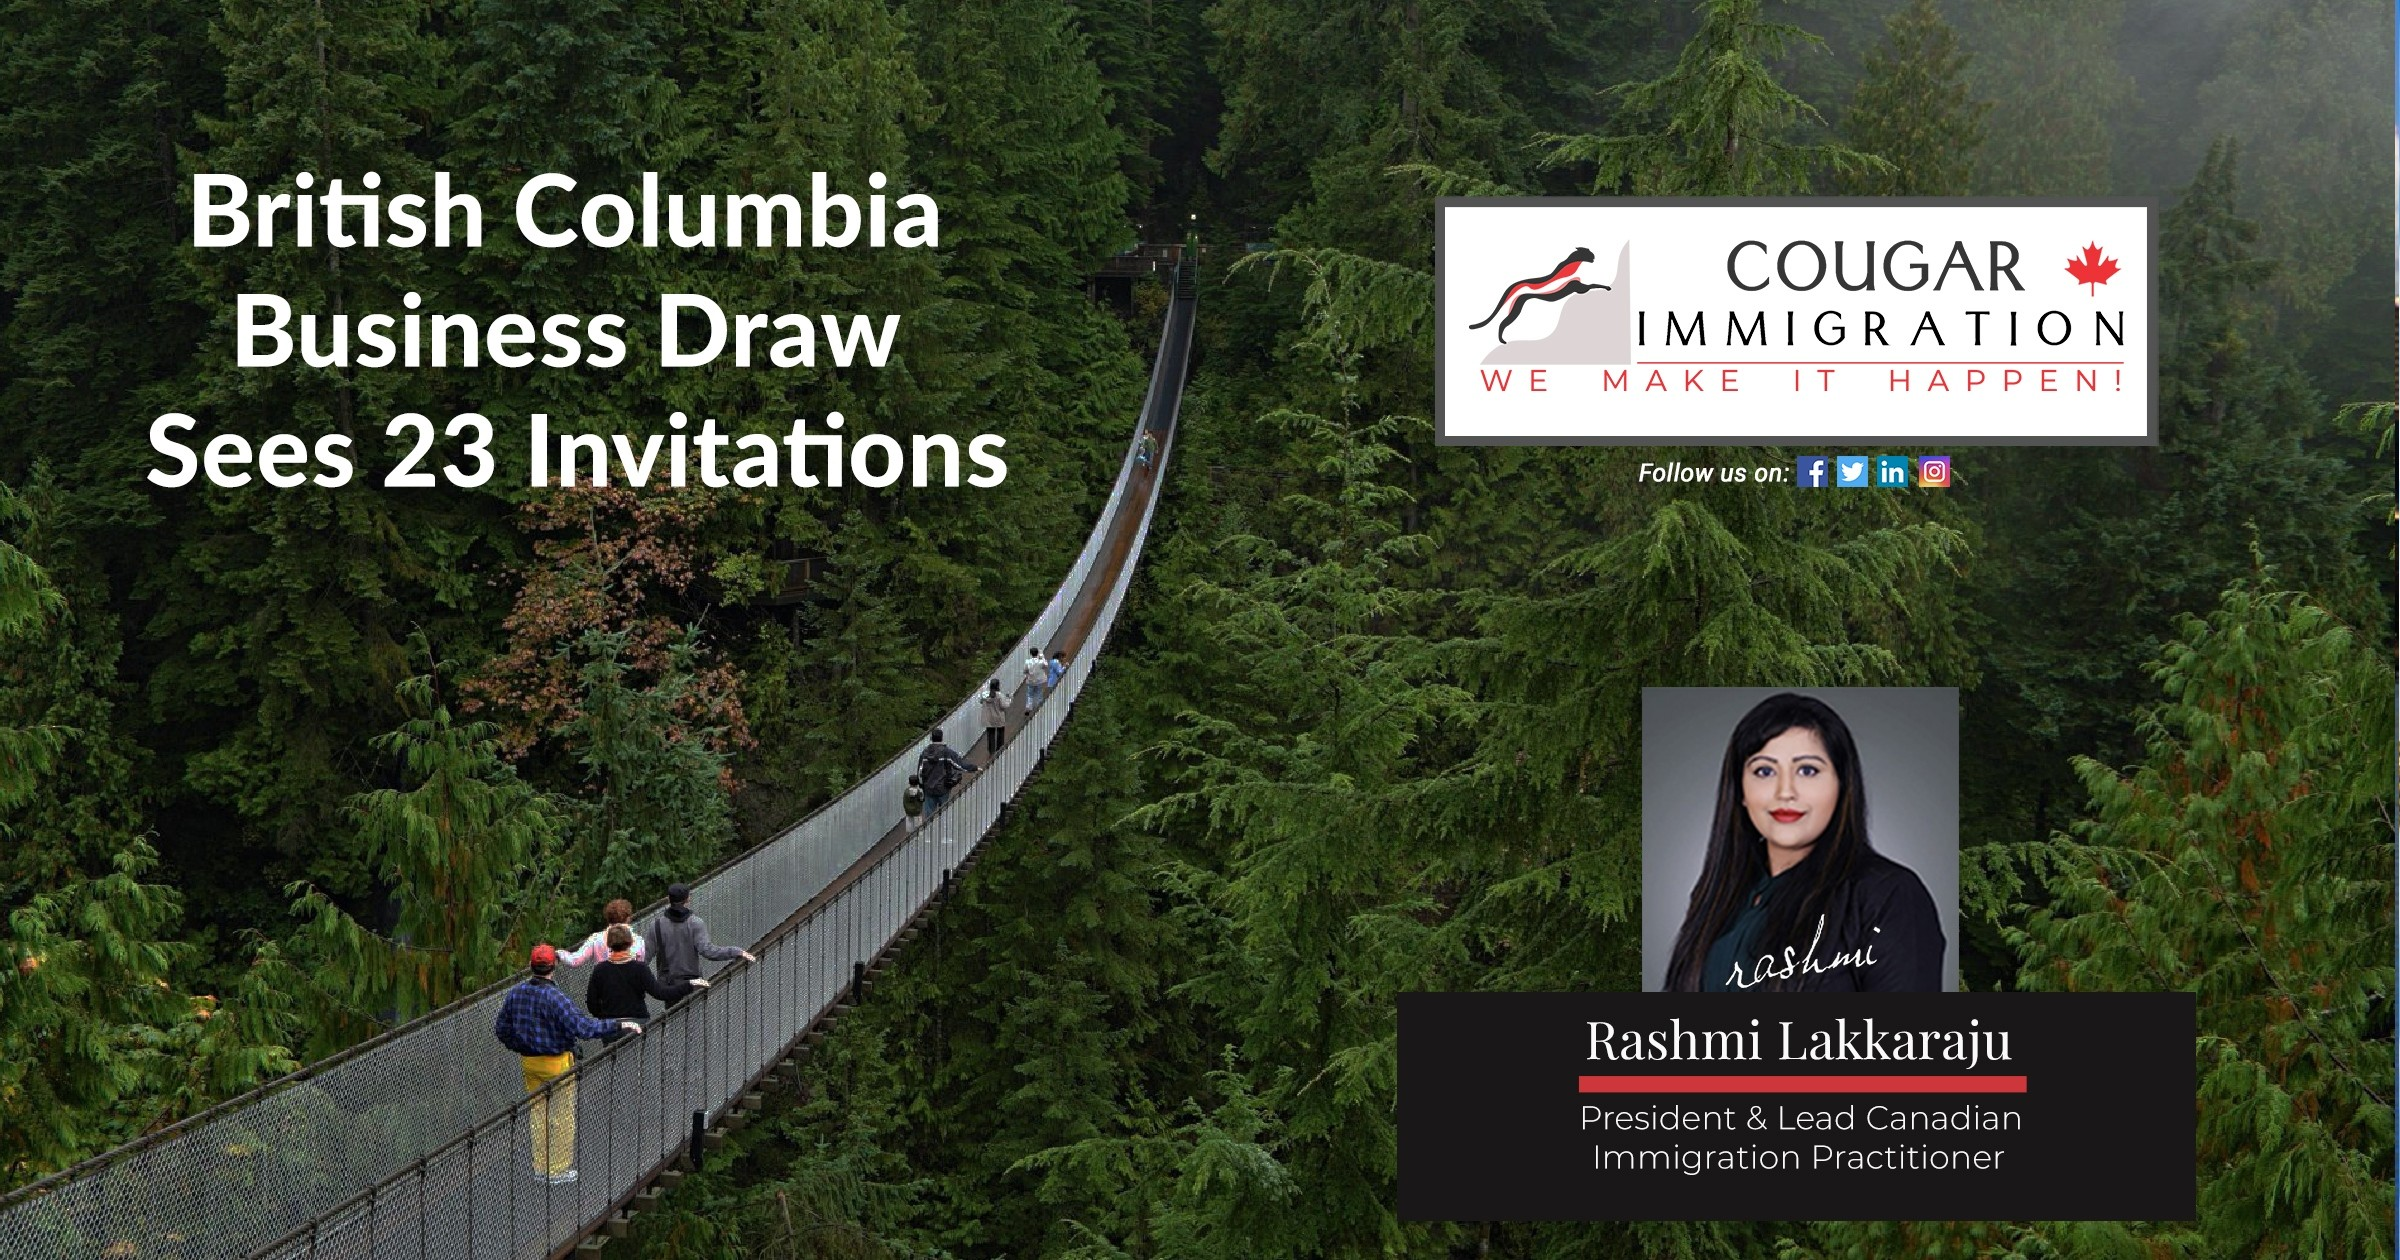 Latest British Columbia Business Draw Sees 23 Invitations Issued thumbnail